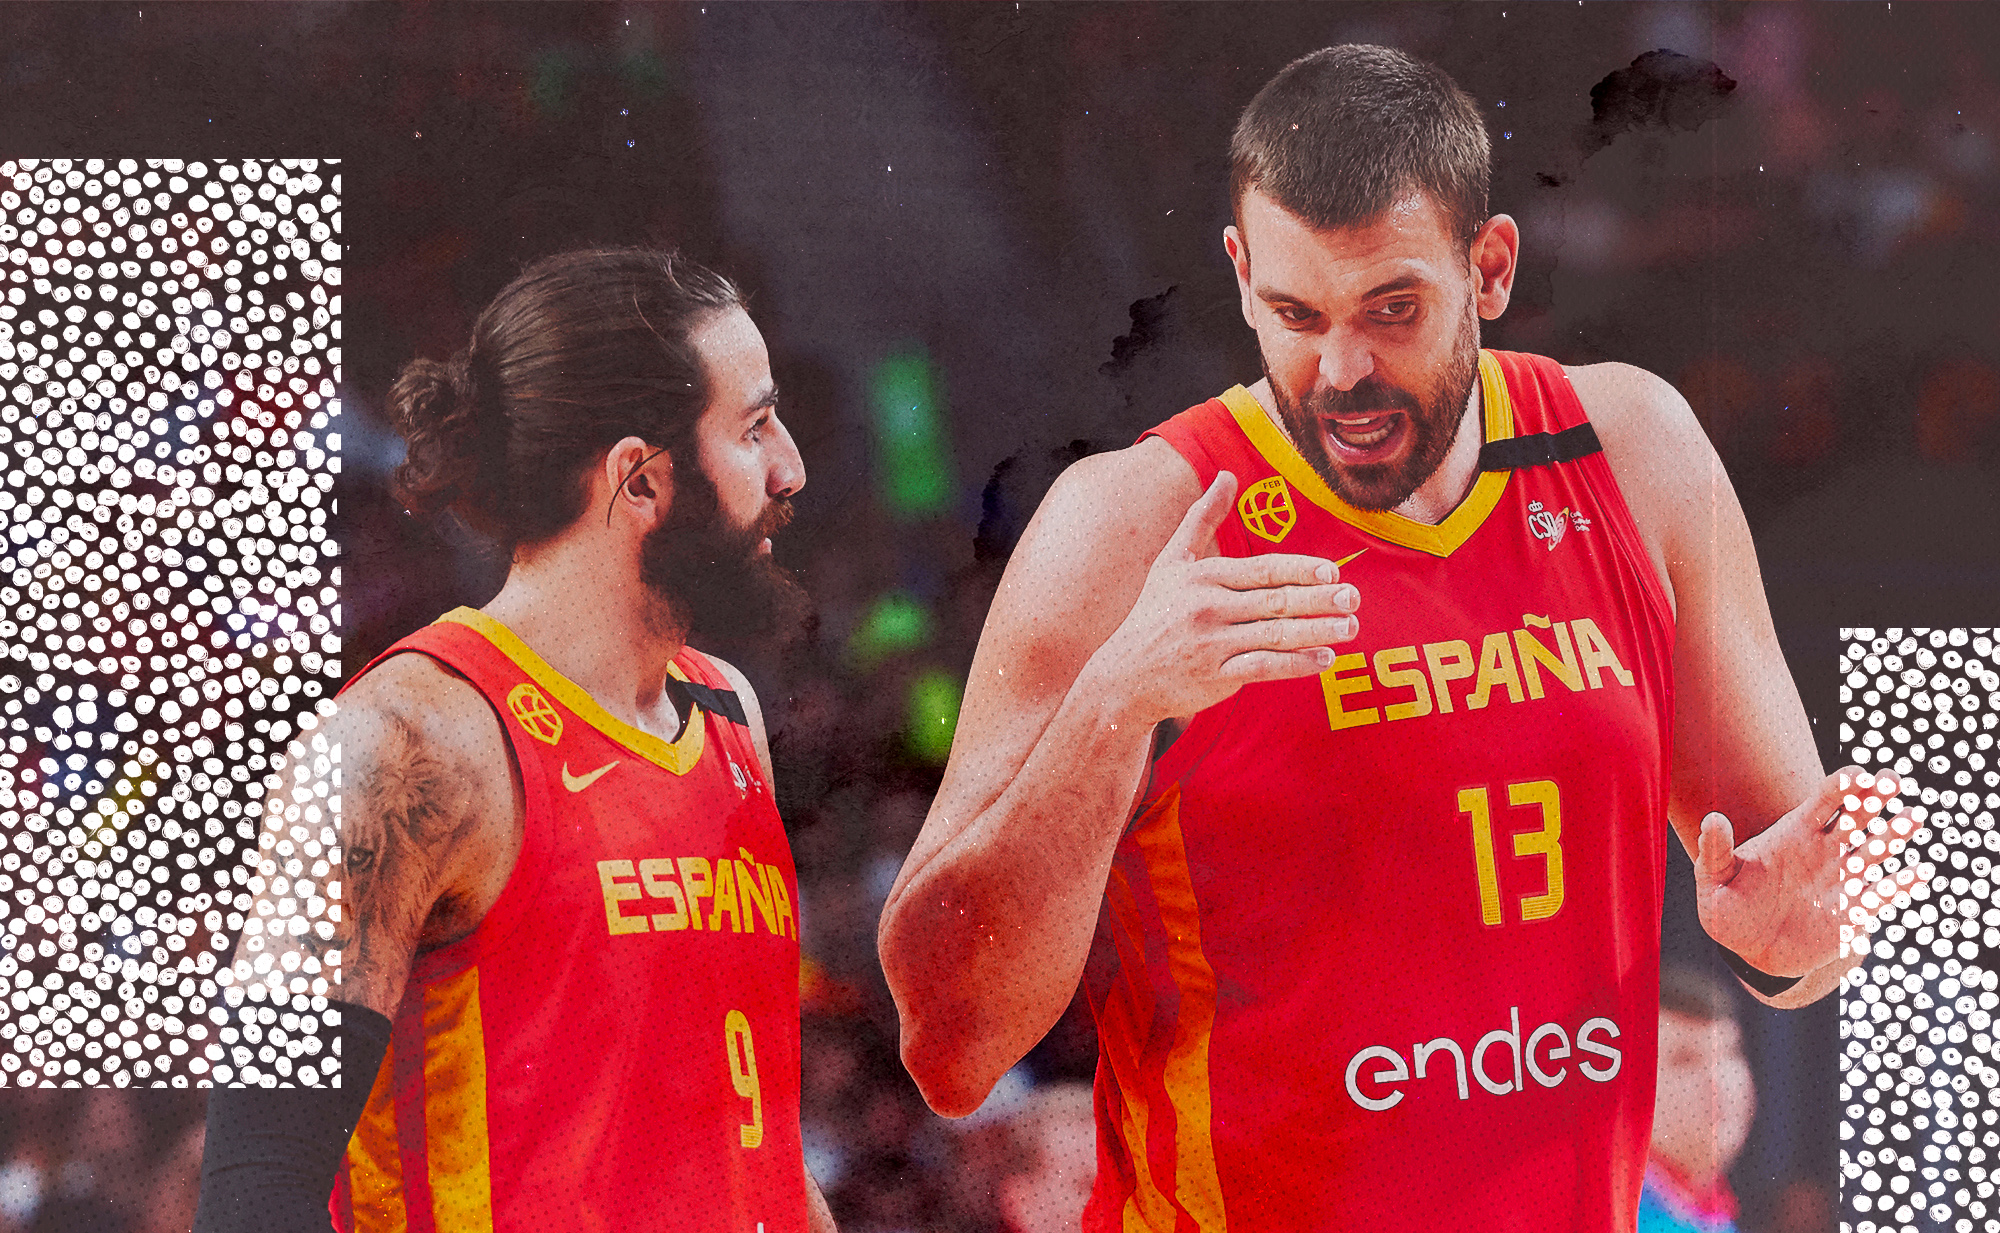 Spain's Ricky Rubio and Marc Gasol talk during FIBA championship game.